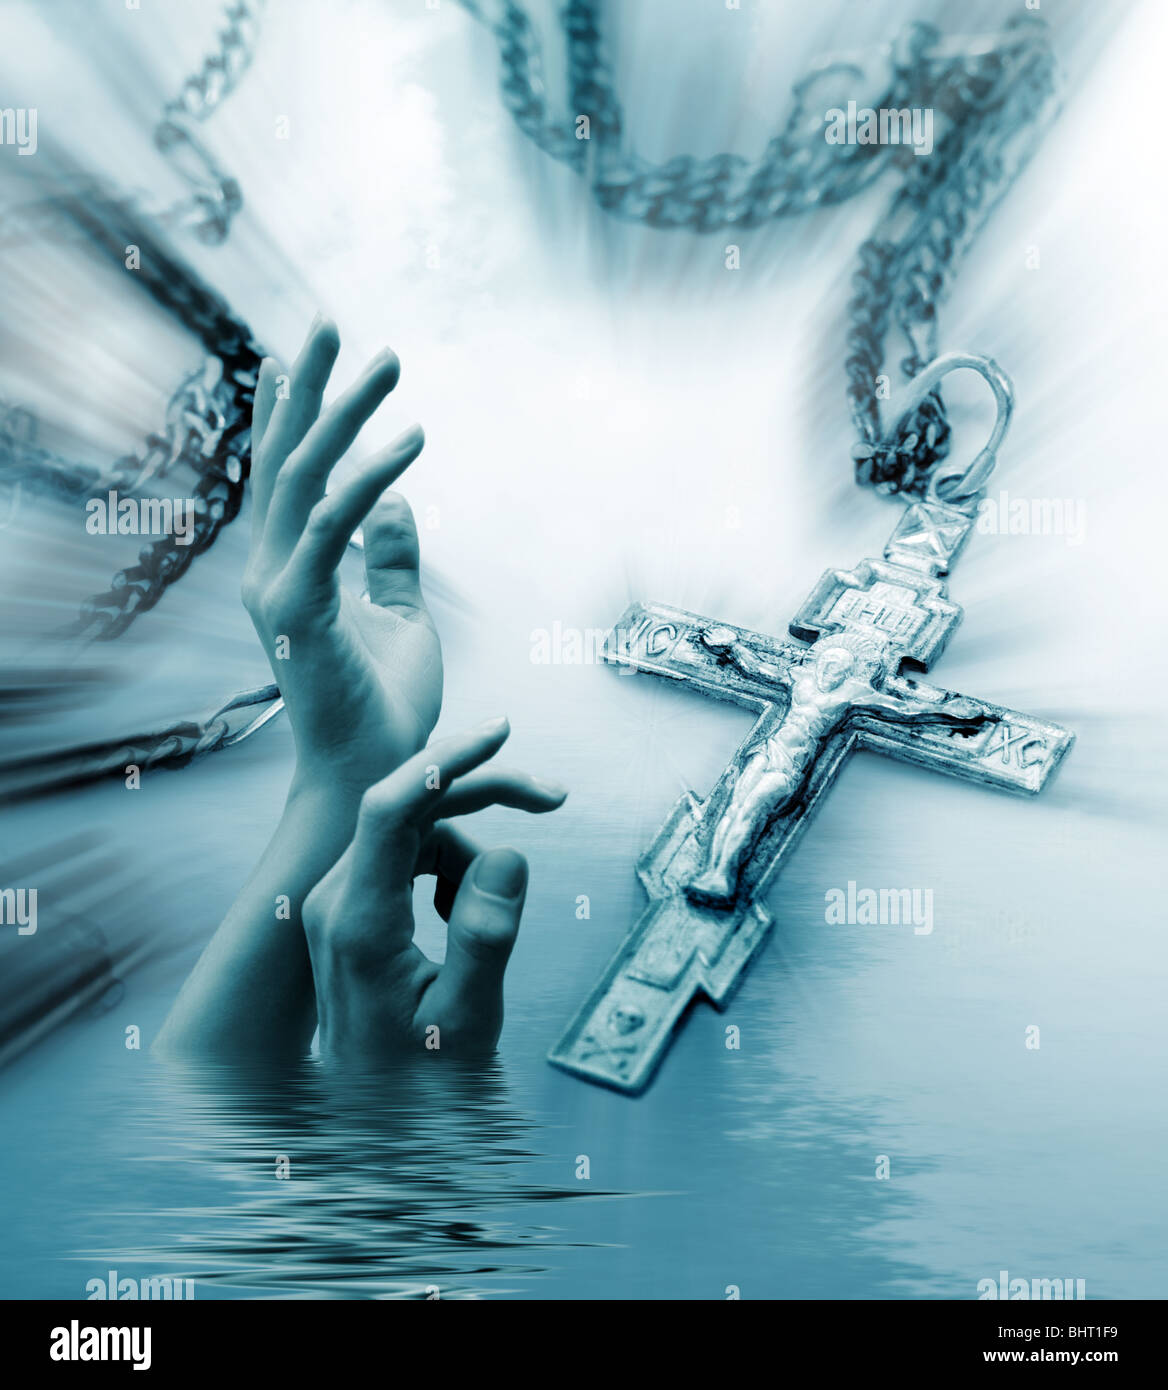 Abstract religious background with the Christian cross and stretching hands to the sky - Stock Image